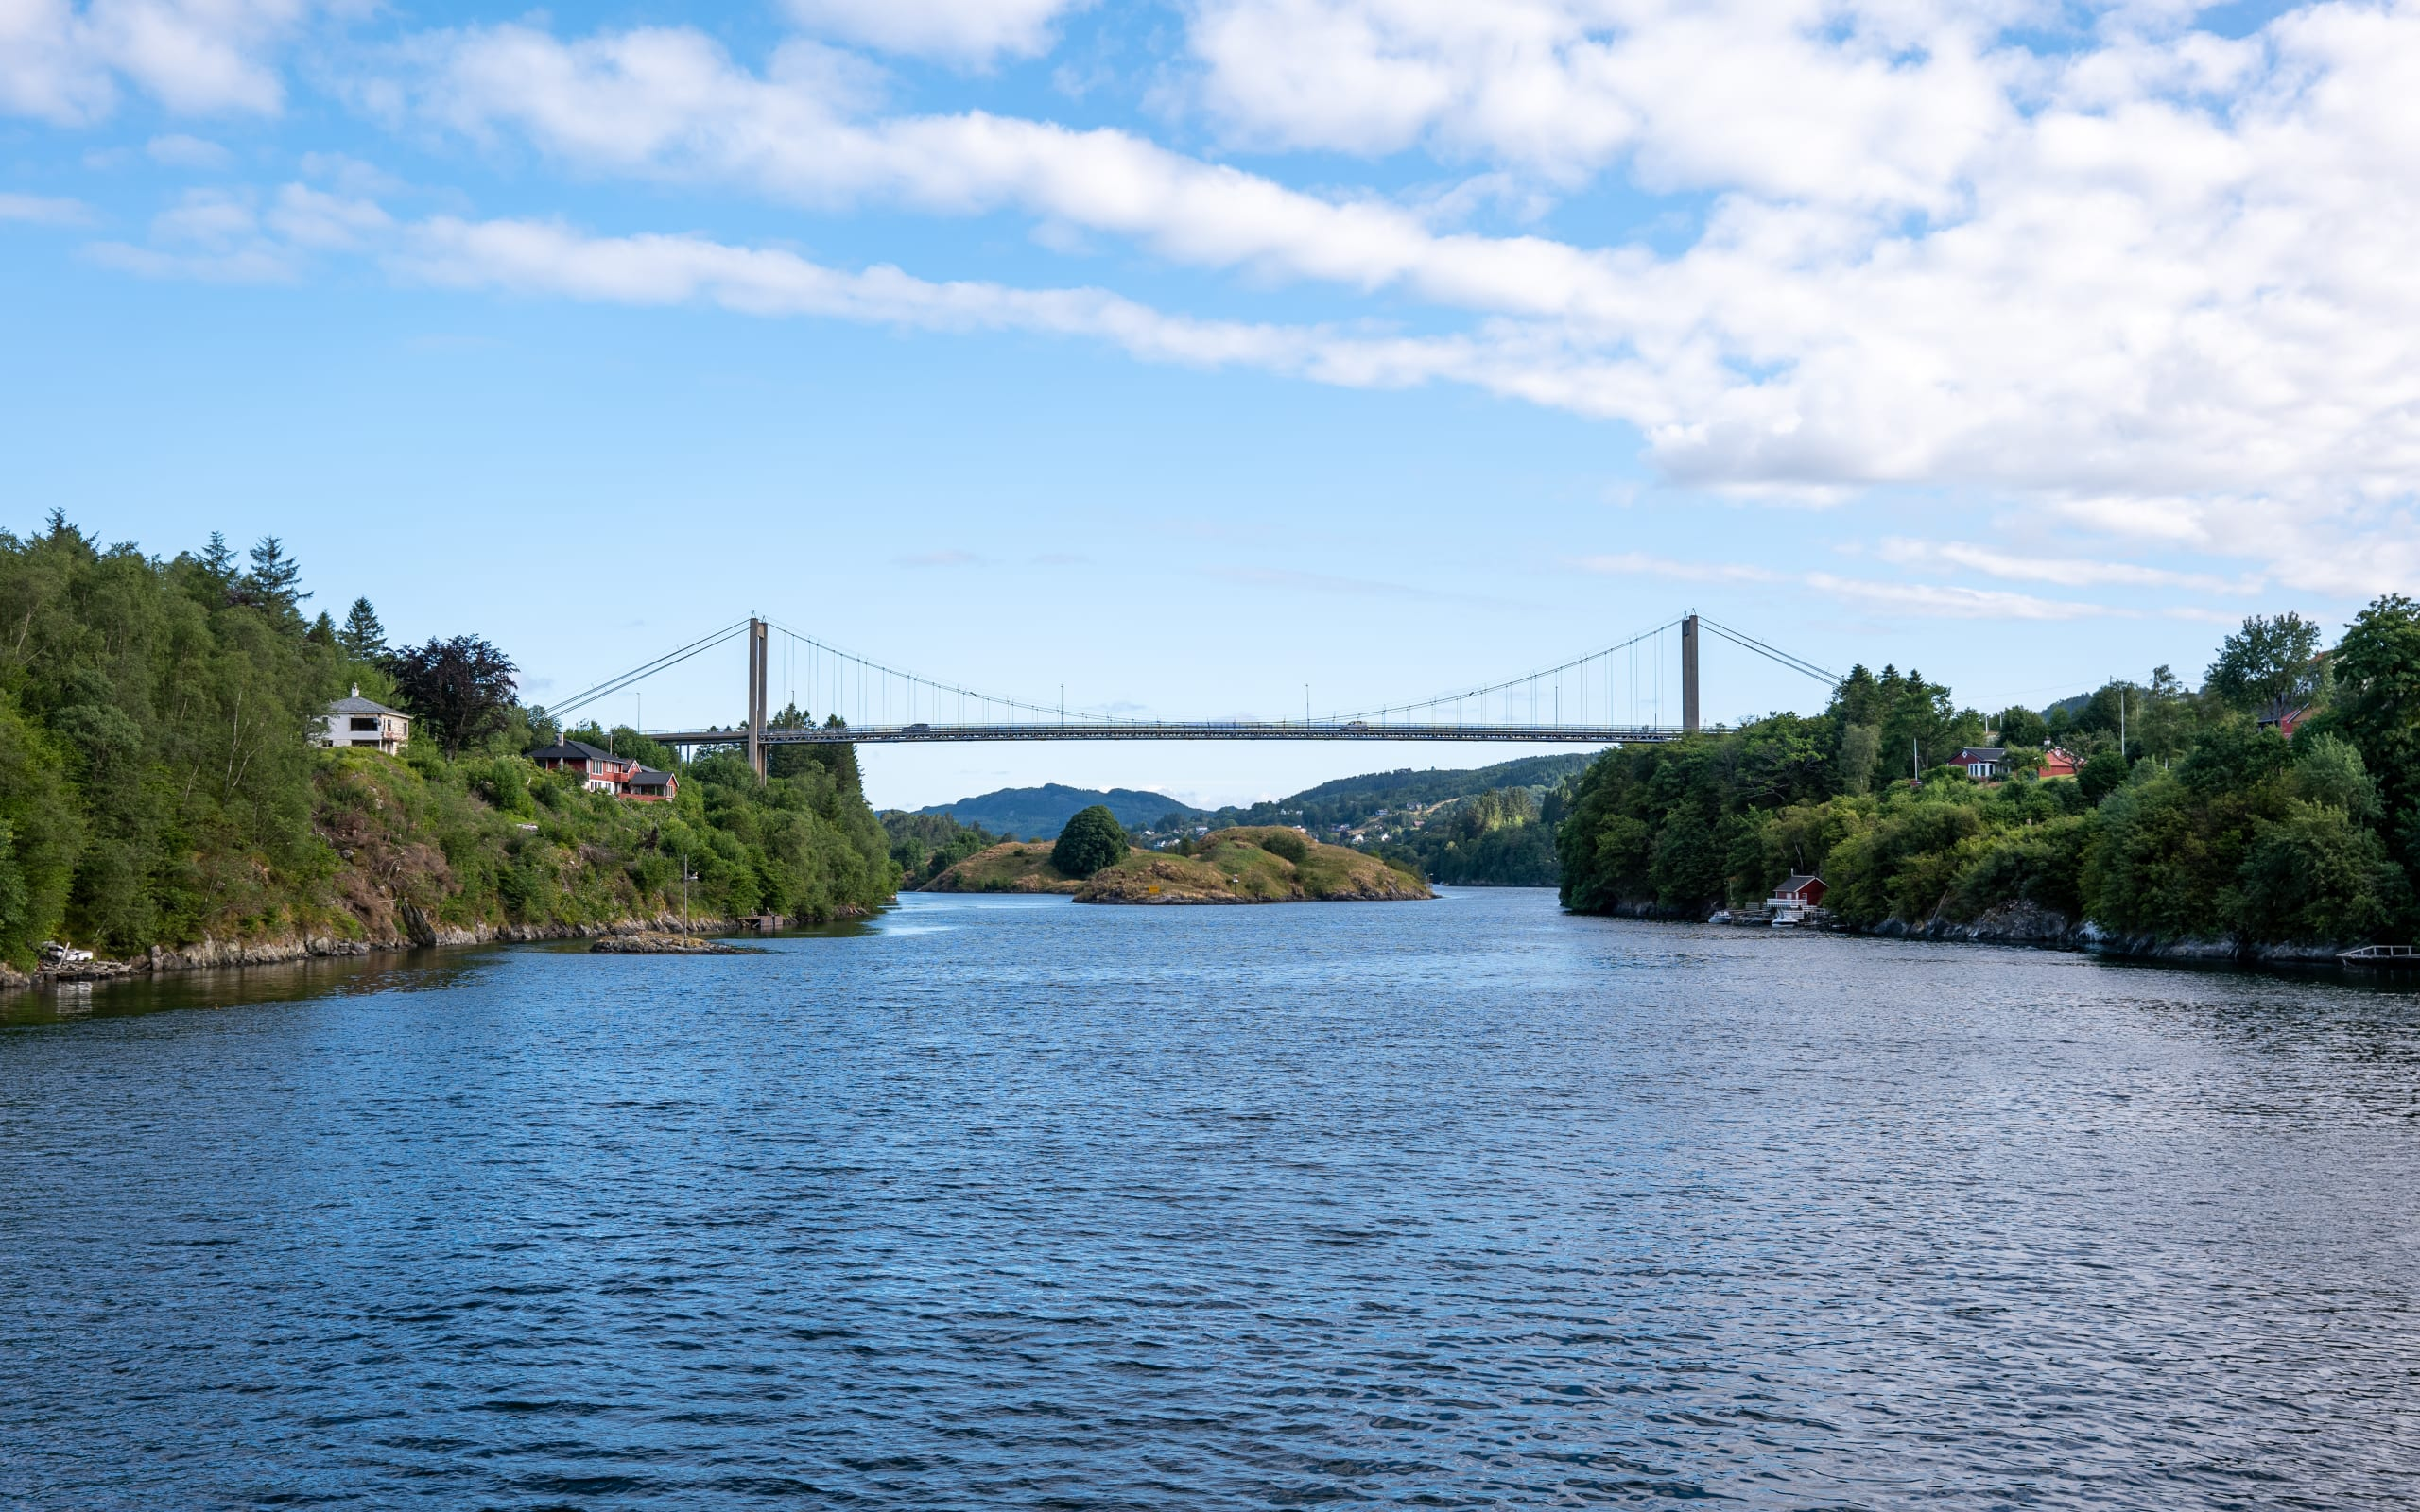 Bridge crossing the Alverstraumen